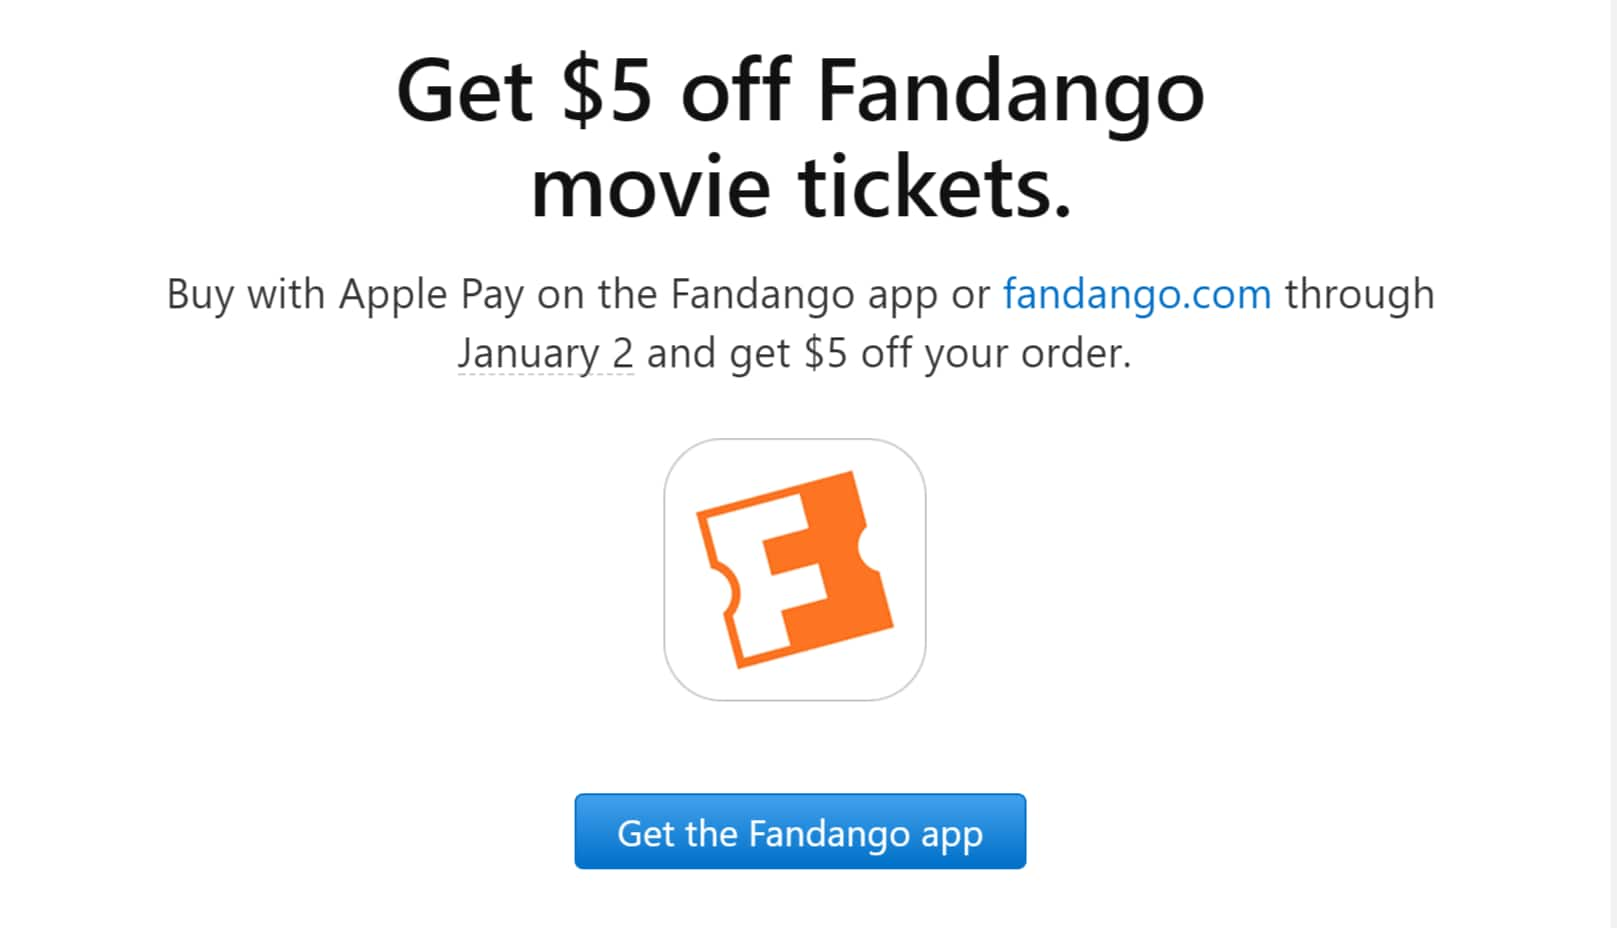 Fandango Movie Tickets: Any Movie Tickets $5 Off w/ Apple Pay Checkout